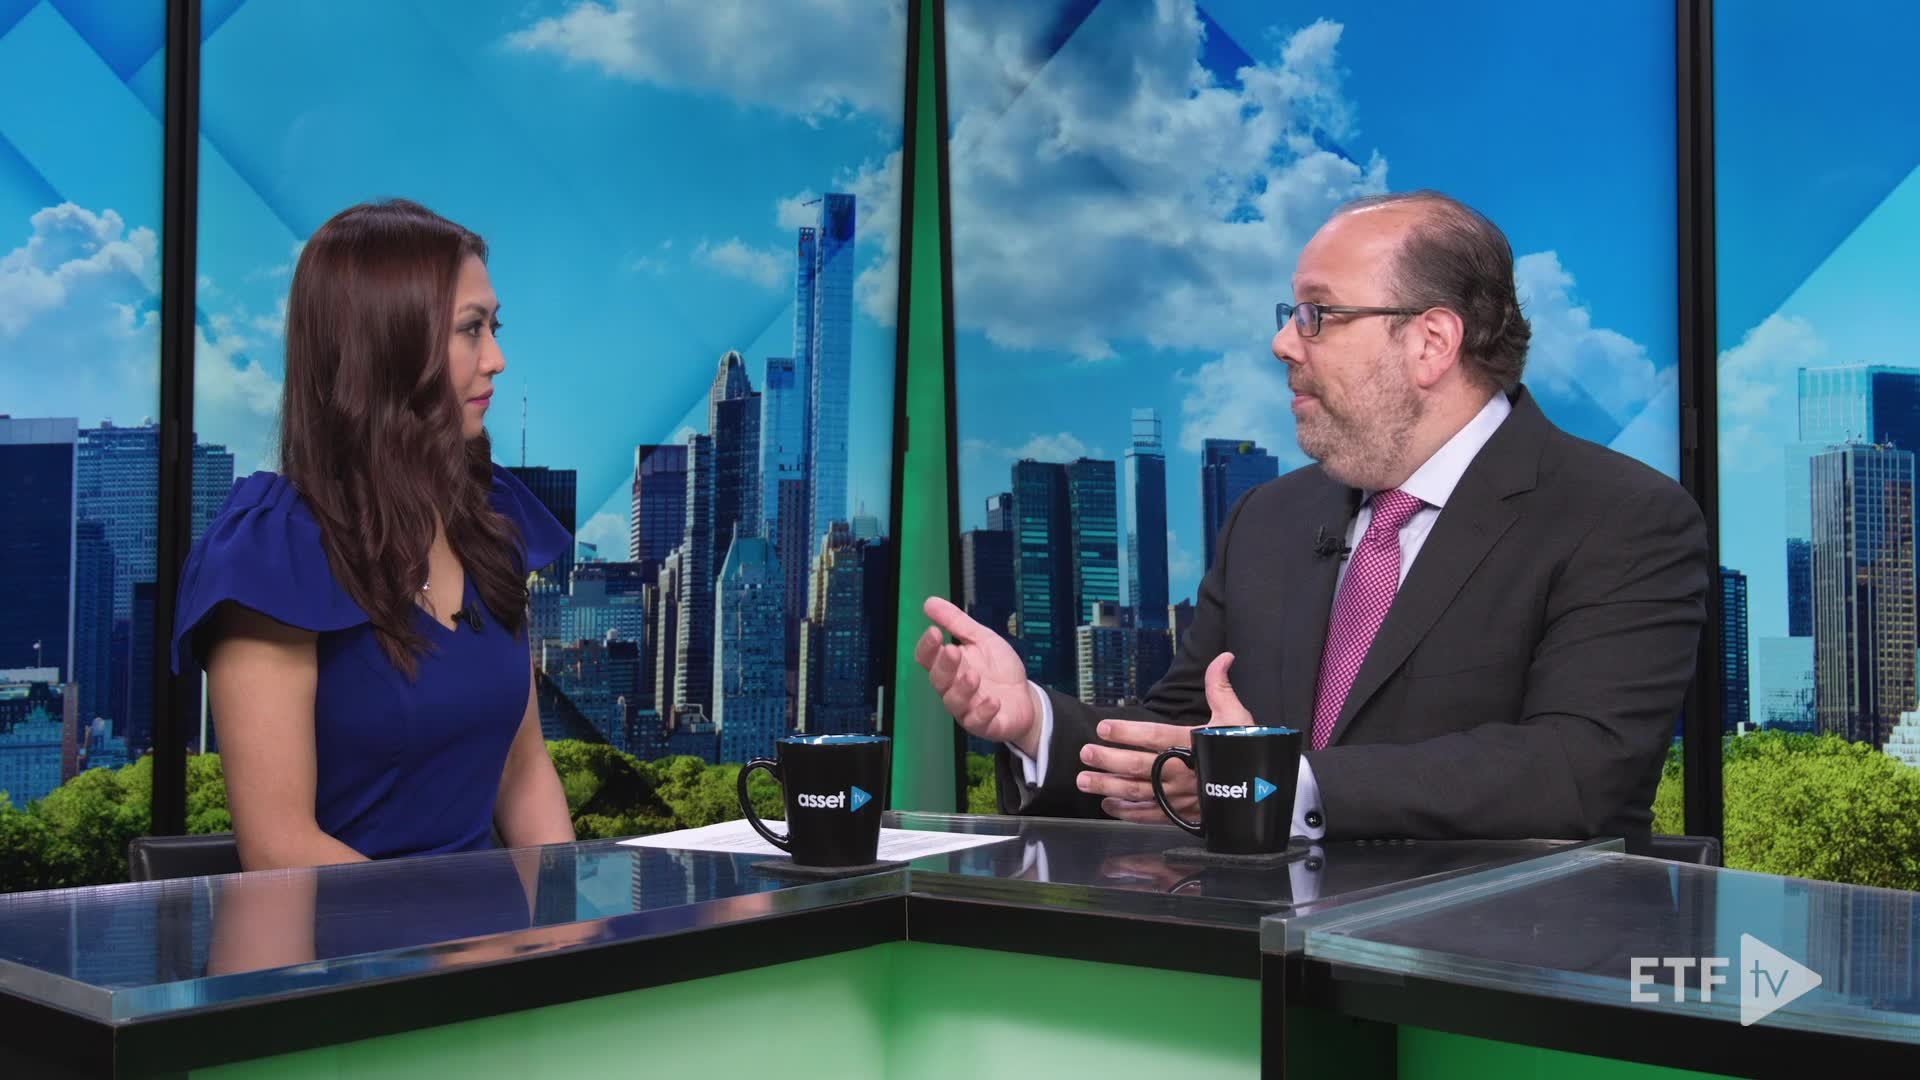 Ed Rosenberg, Senior Vice President and Head of Exchange Traded Funds, American Century Investments talk about about how Semitransparent Active ETFs broaden the range of strategies available in the ETF structure.